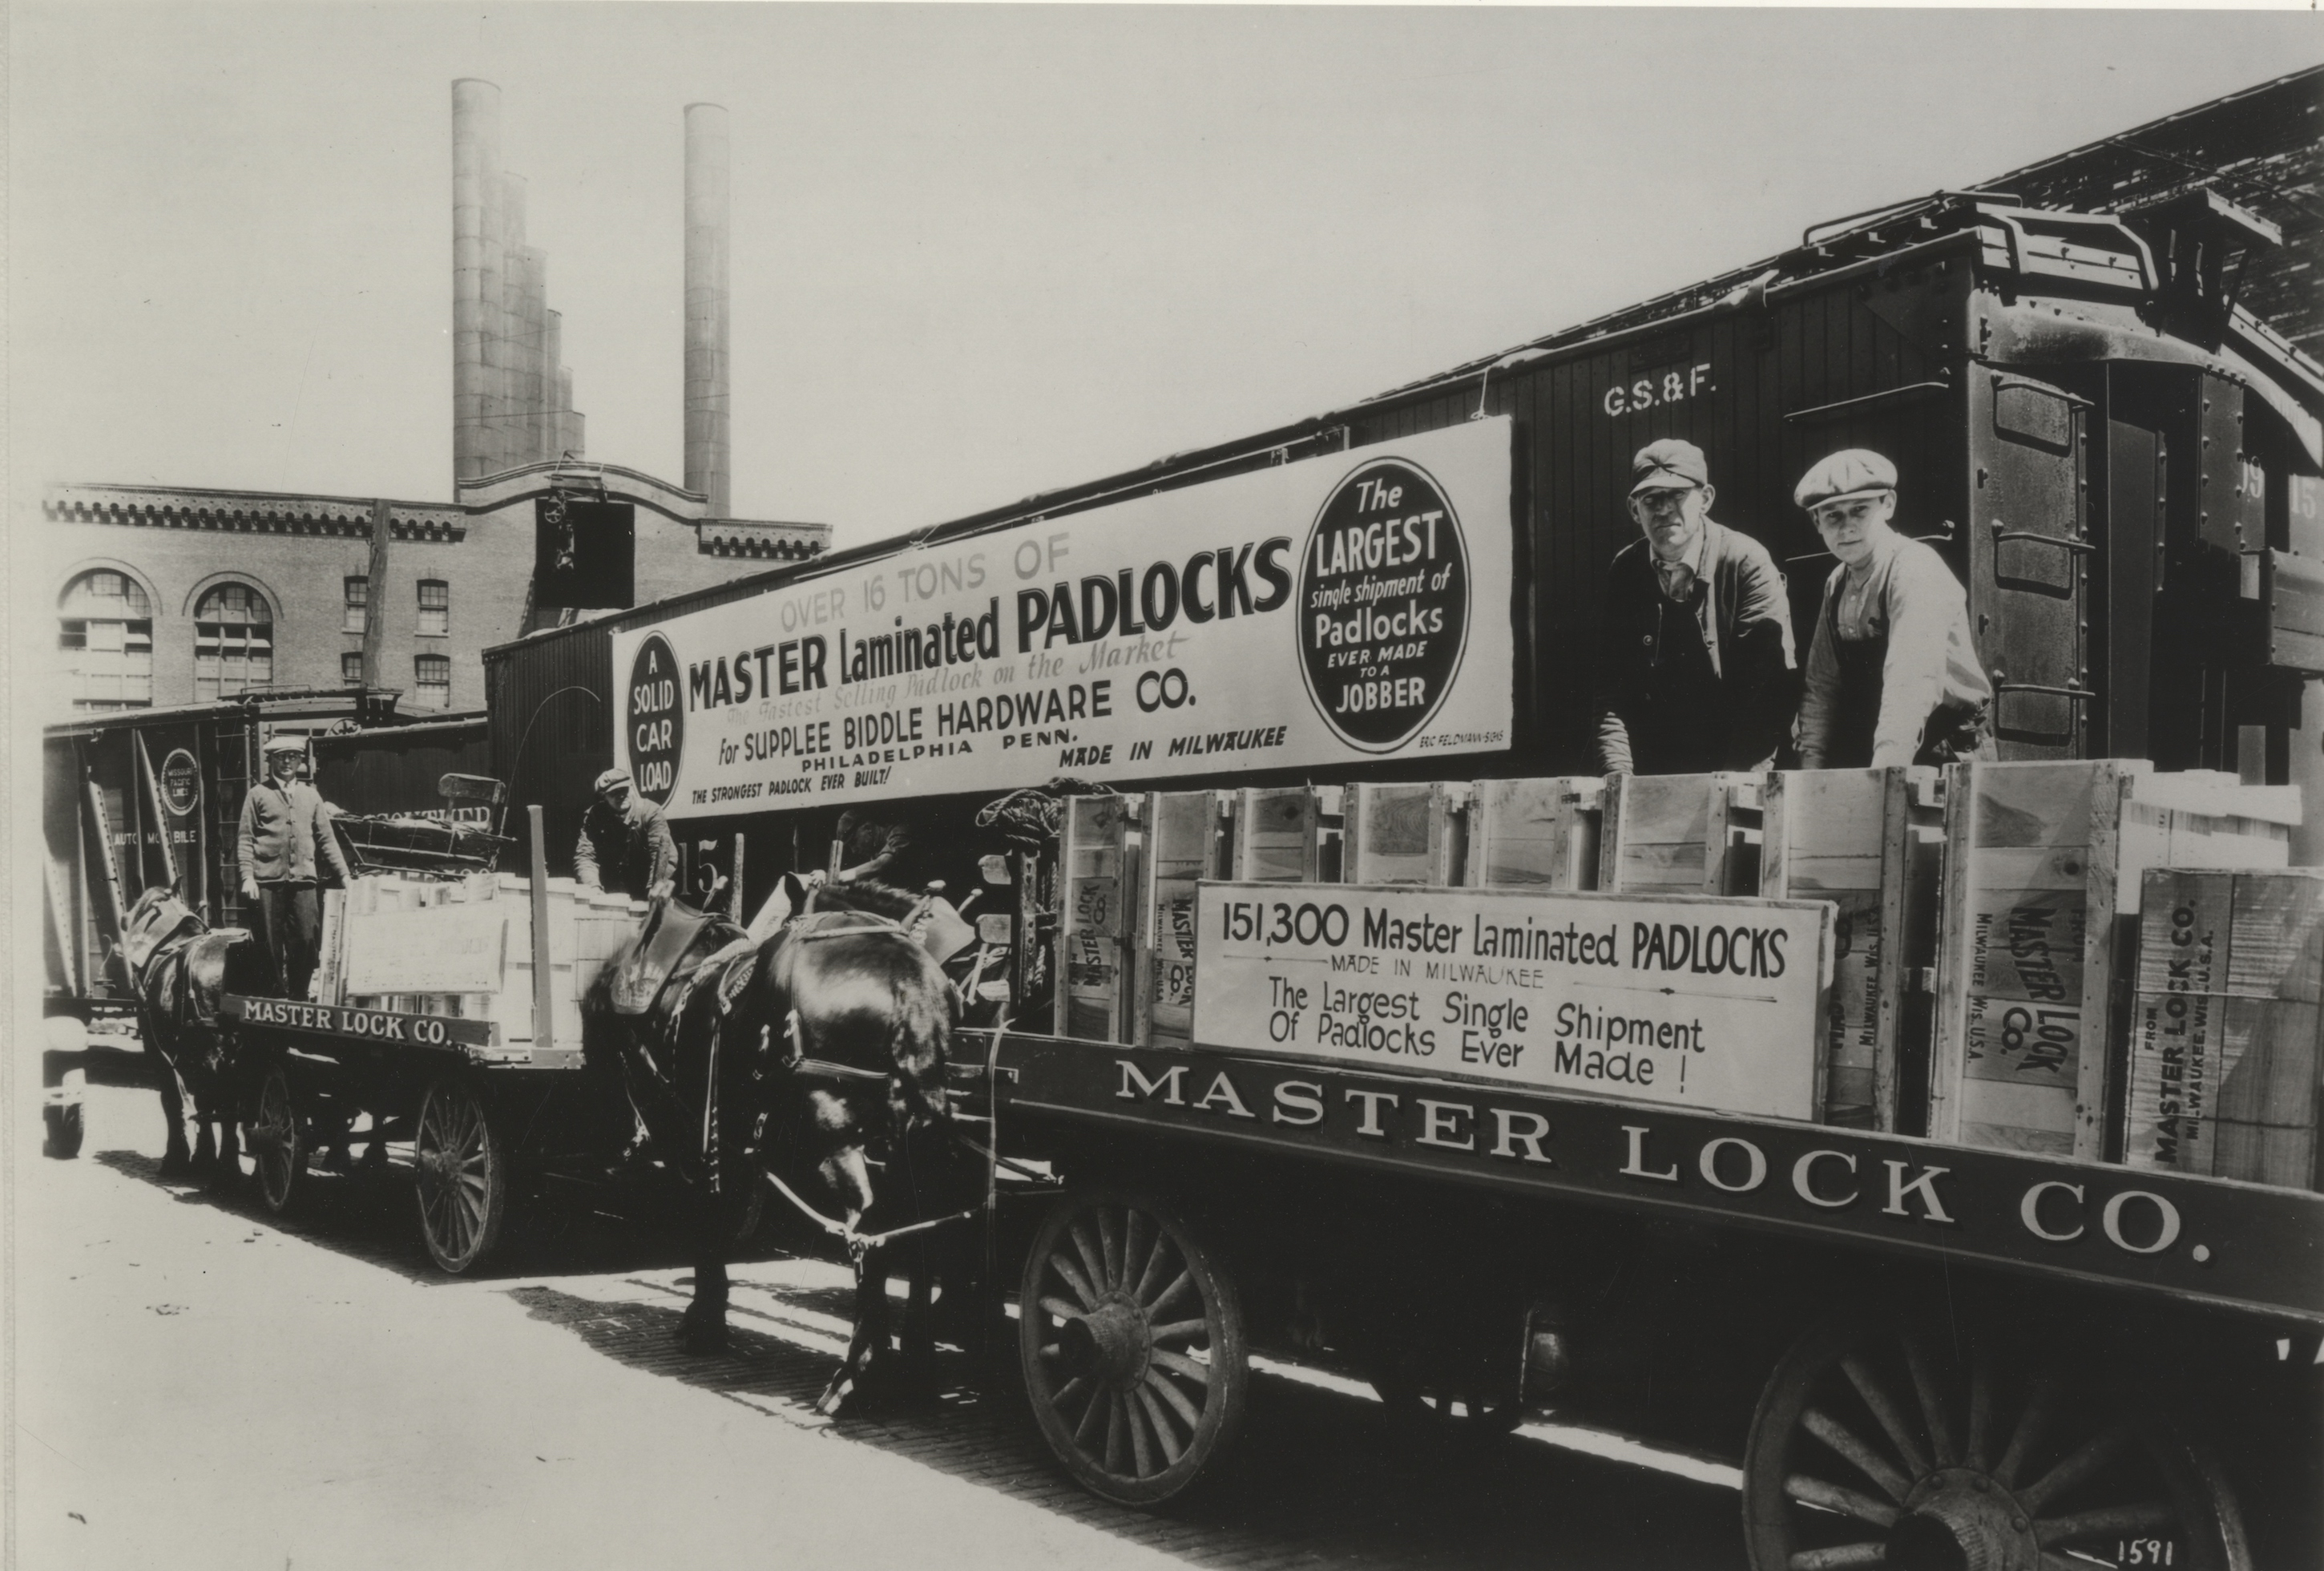 <table class=&quot;lightbox&quot;><tr><td colspan=2 class=&quot;lightbox-title&quot;>Loading Master Locks</td></tr><tr><td colspan=2 class=&quot;lightbox-caption&quot;>Master Lock padlocks are being loaded onto a train in the twentieth century. </td></tr><tr><td colspan=2 class=&quot;lightbox-spacer&quot;></td></tr><tr class=&quot;lightbox-detail&quot;><td class=&quot;cell-title&quot;>Source: </td><td class=&quot;cell-value&quot;>From the Milwaukee County Historical Society.<br /><a href=&quot;https://milwaukeehistory.net/research/photographic-collections/&quot; target=&quot;_blank&quot;>Milwaukee County Historical Society</a></td></tr><tr class=&quot;filler-row&quot;><td colspan=2>&nbsp;</td></tr></table>